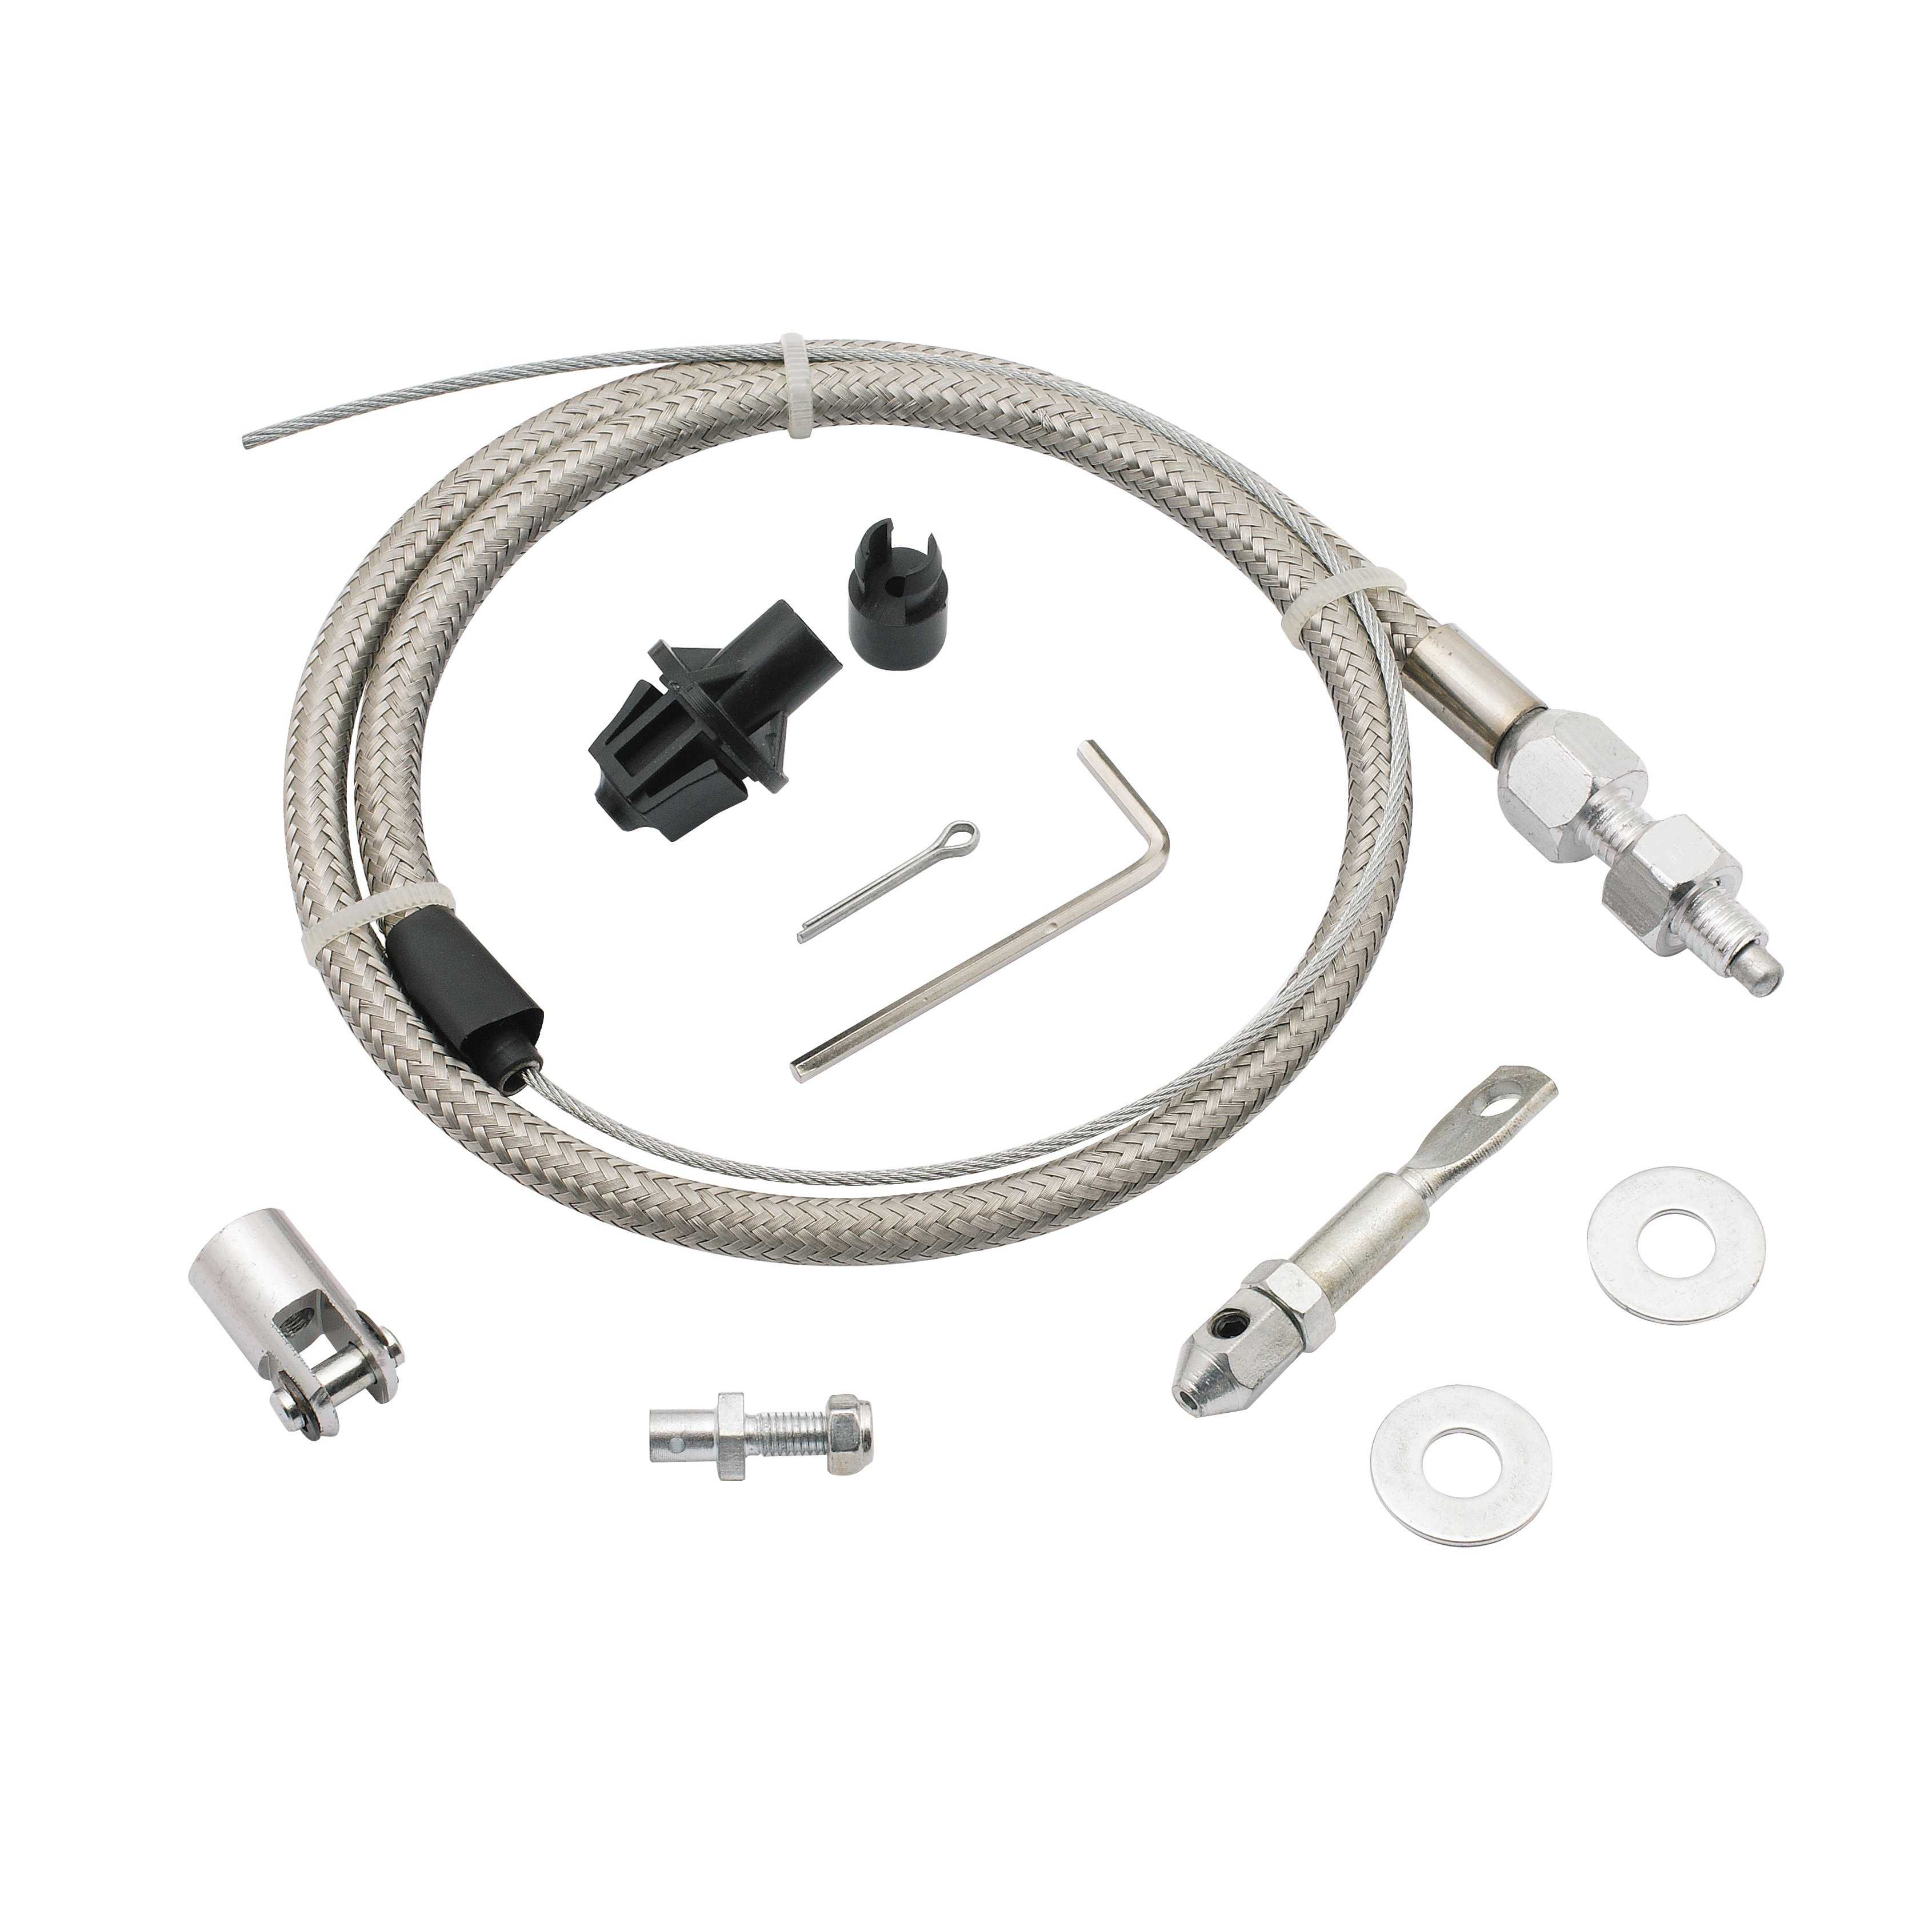 Brackets And Linkage Holley Performance Products 1969 Ford Truck Choke Wiring Throttle Cable Kit Stainless Steel Braided